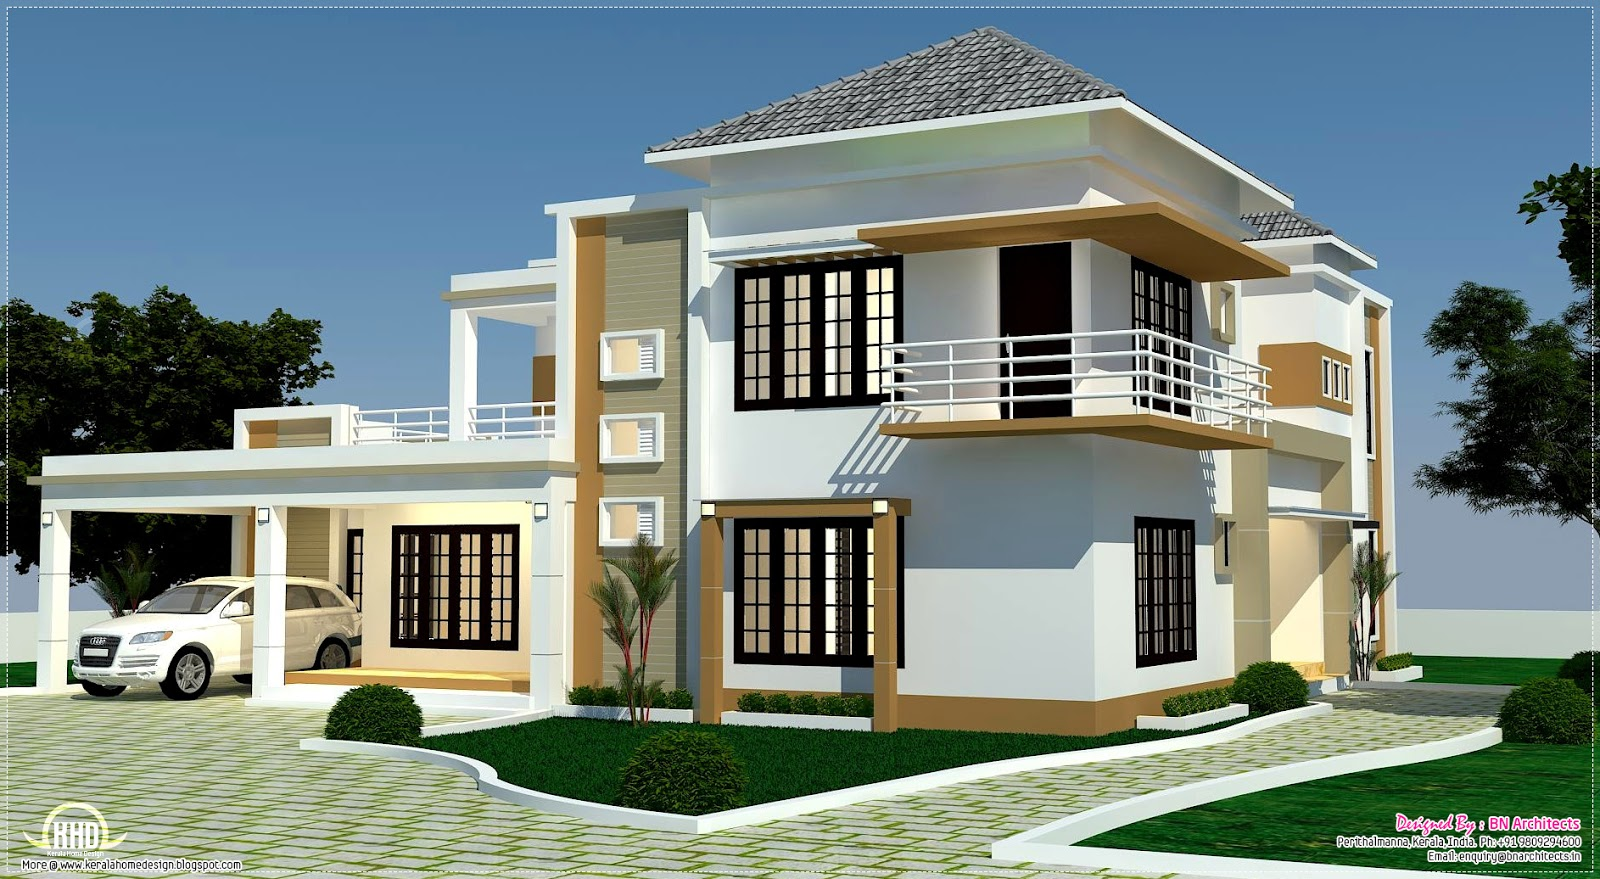 Floor plan 3d views and interiors of 4 bedroom villa for One floor house design plans 3d